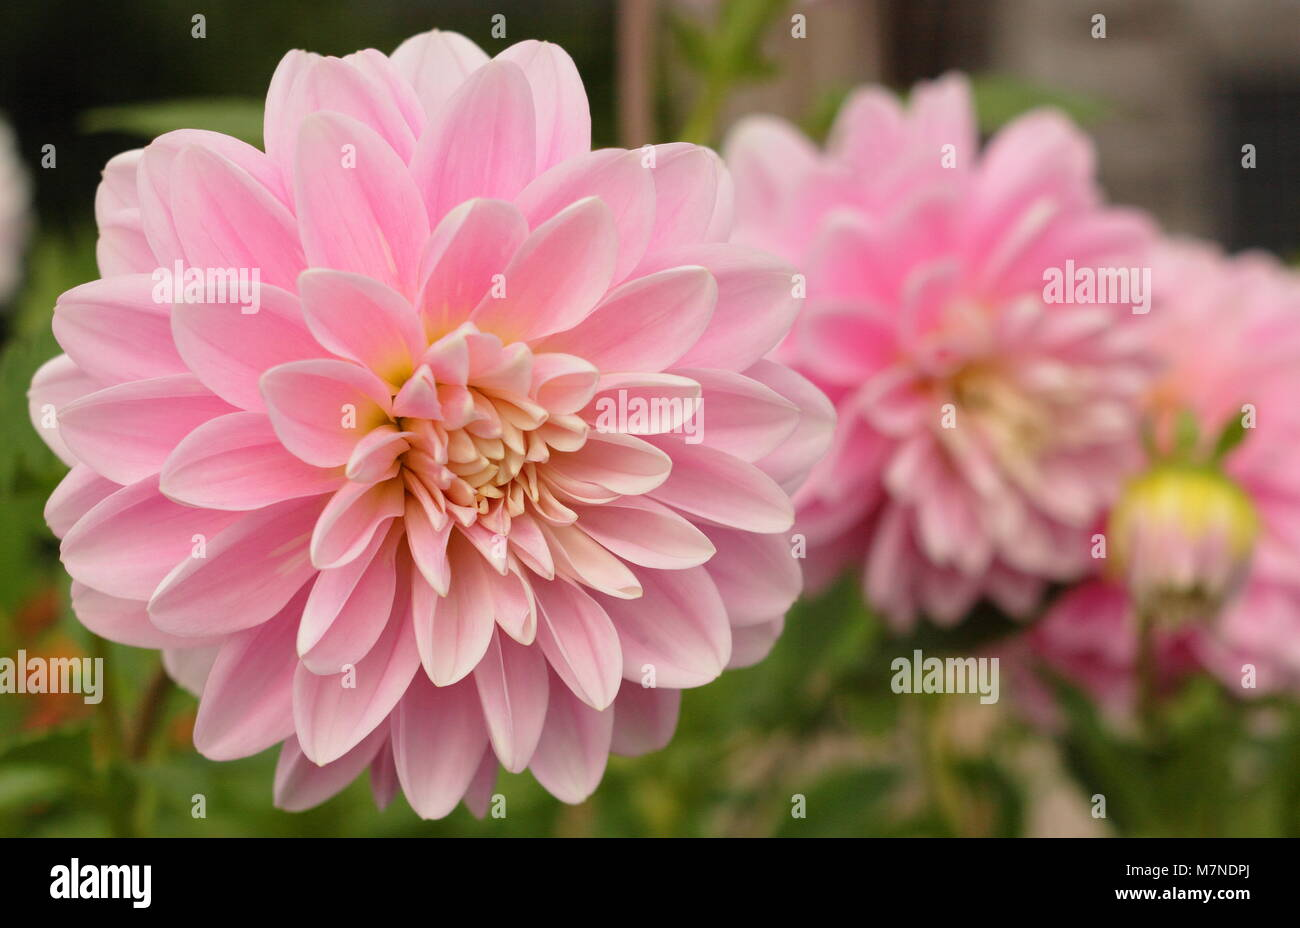 water lily dahlia photos water lily dahlia images alamy. Black Bedroom Furniture Sets. Home Design Ideas